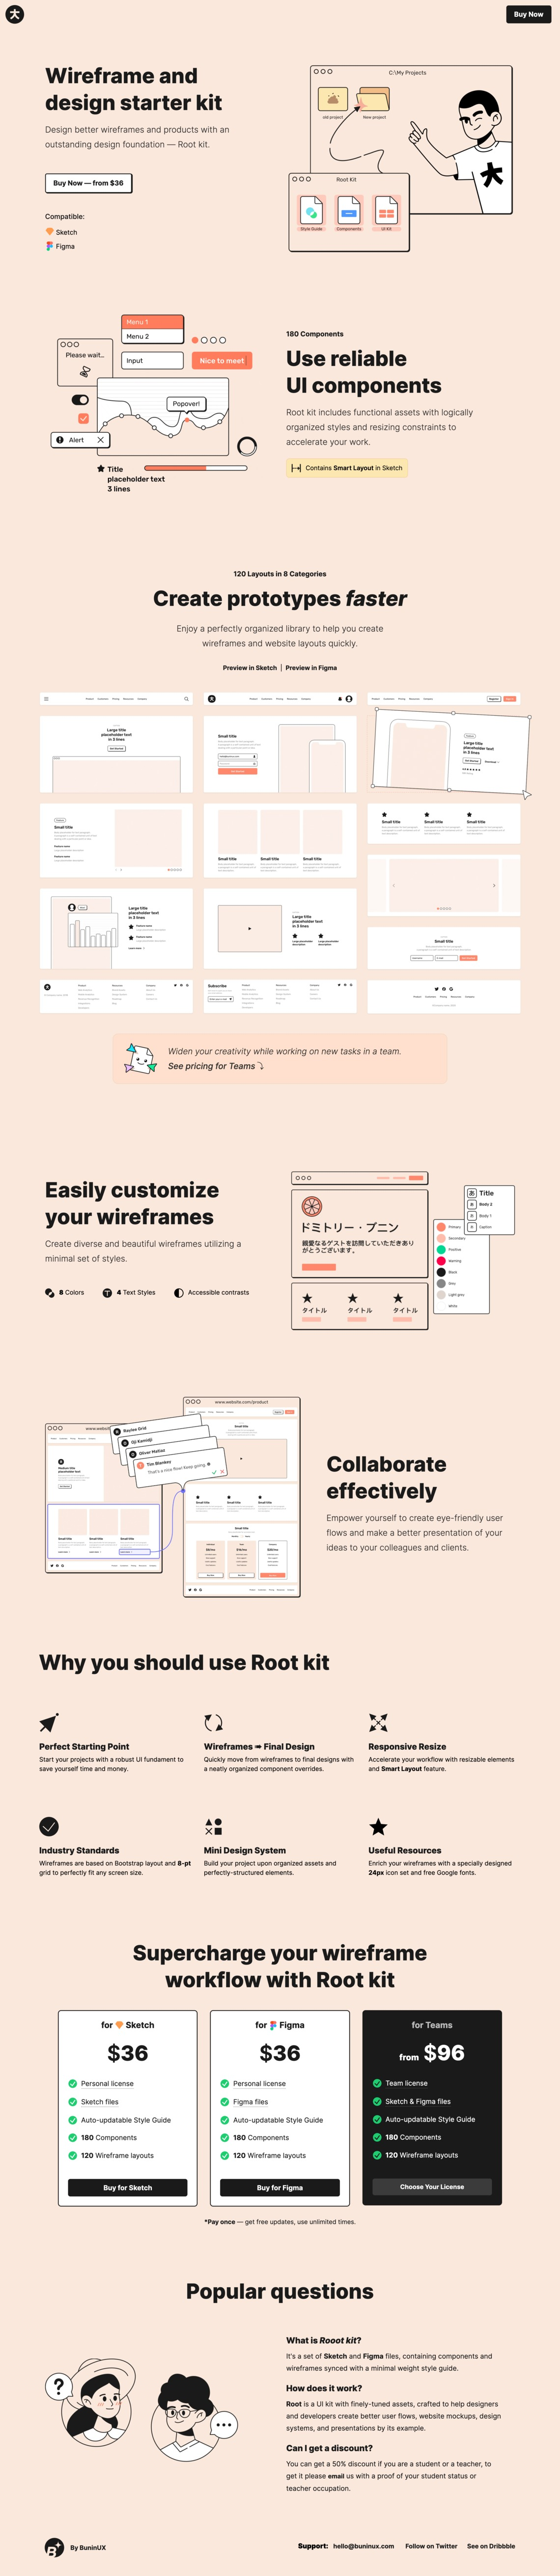 Root - Website Wireframe and Design Starter Kit